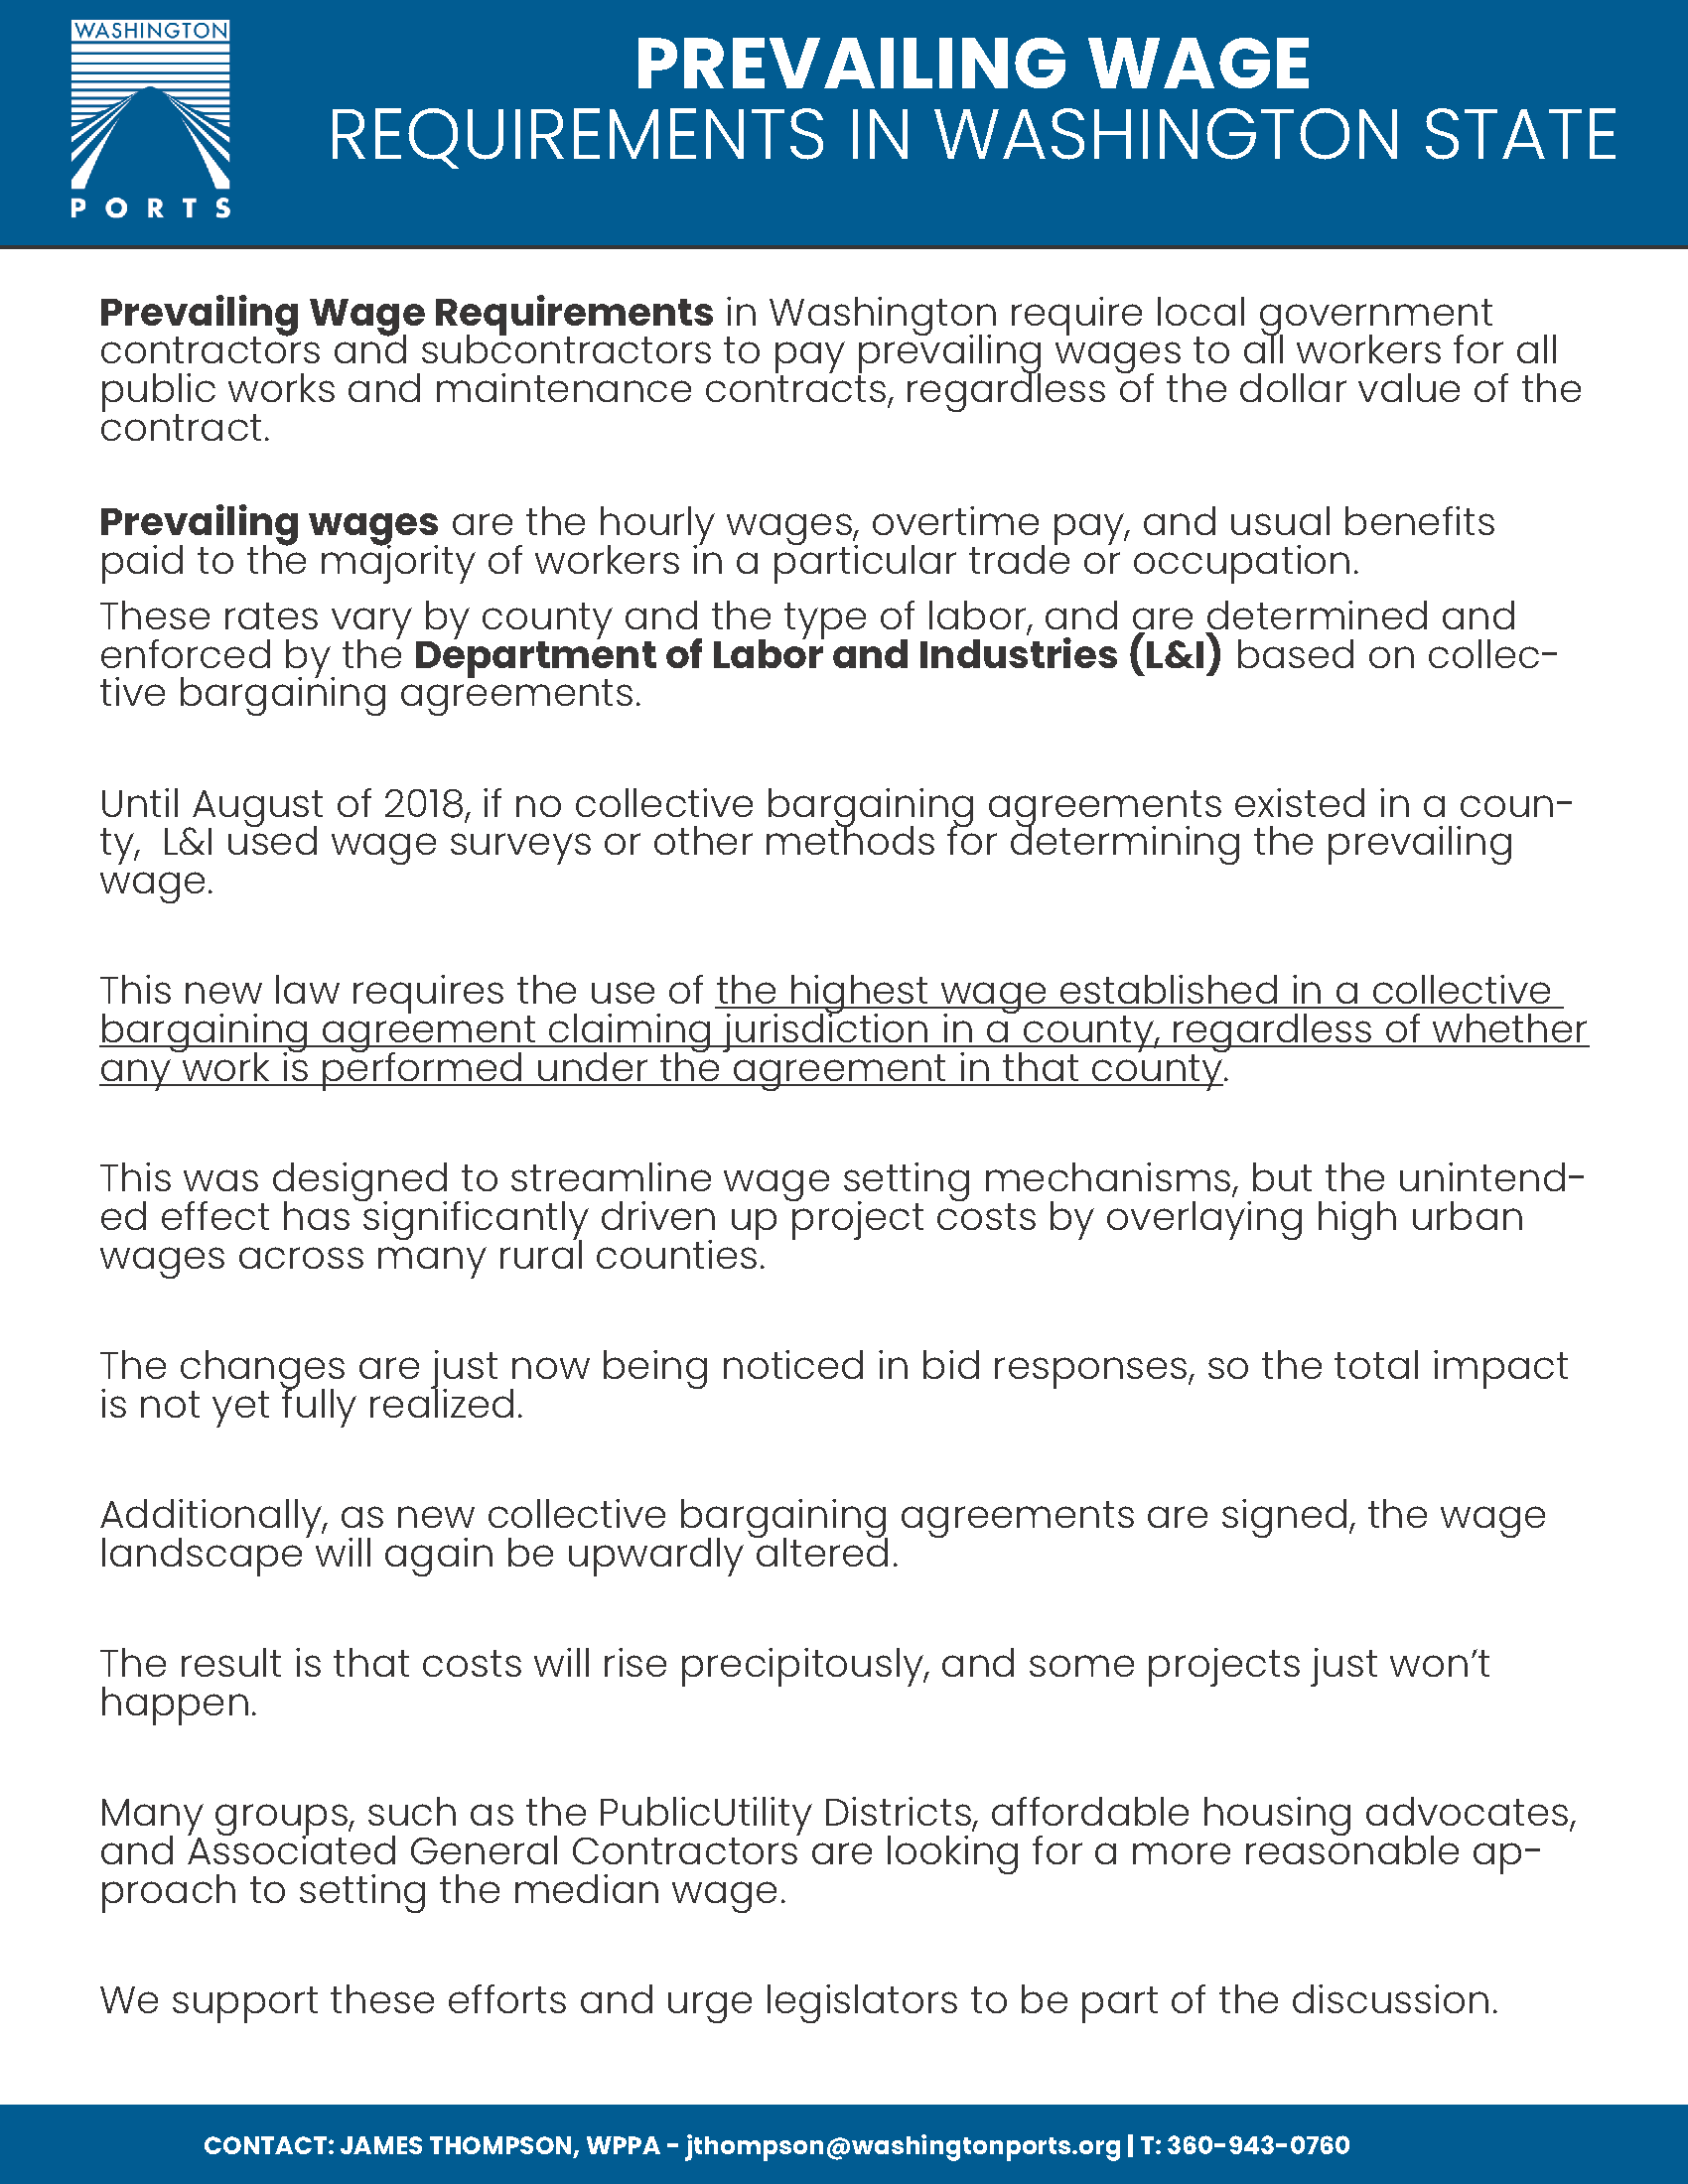 PREVAILING WAGE REQUIREMENTS - Download